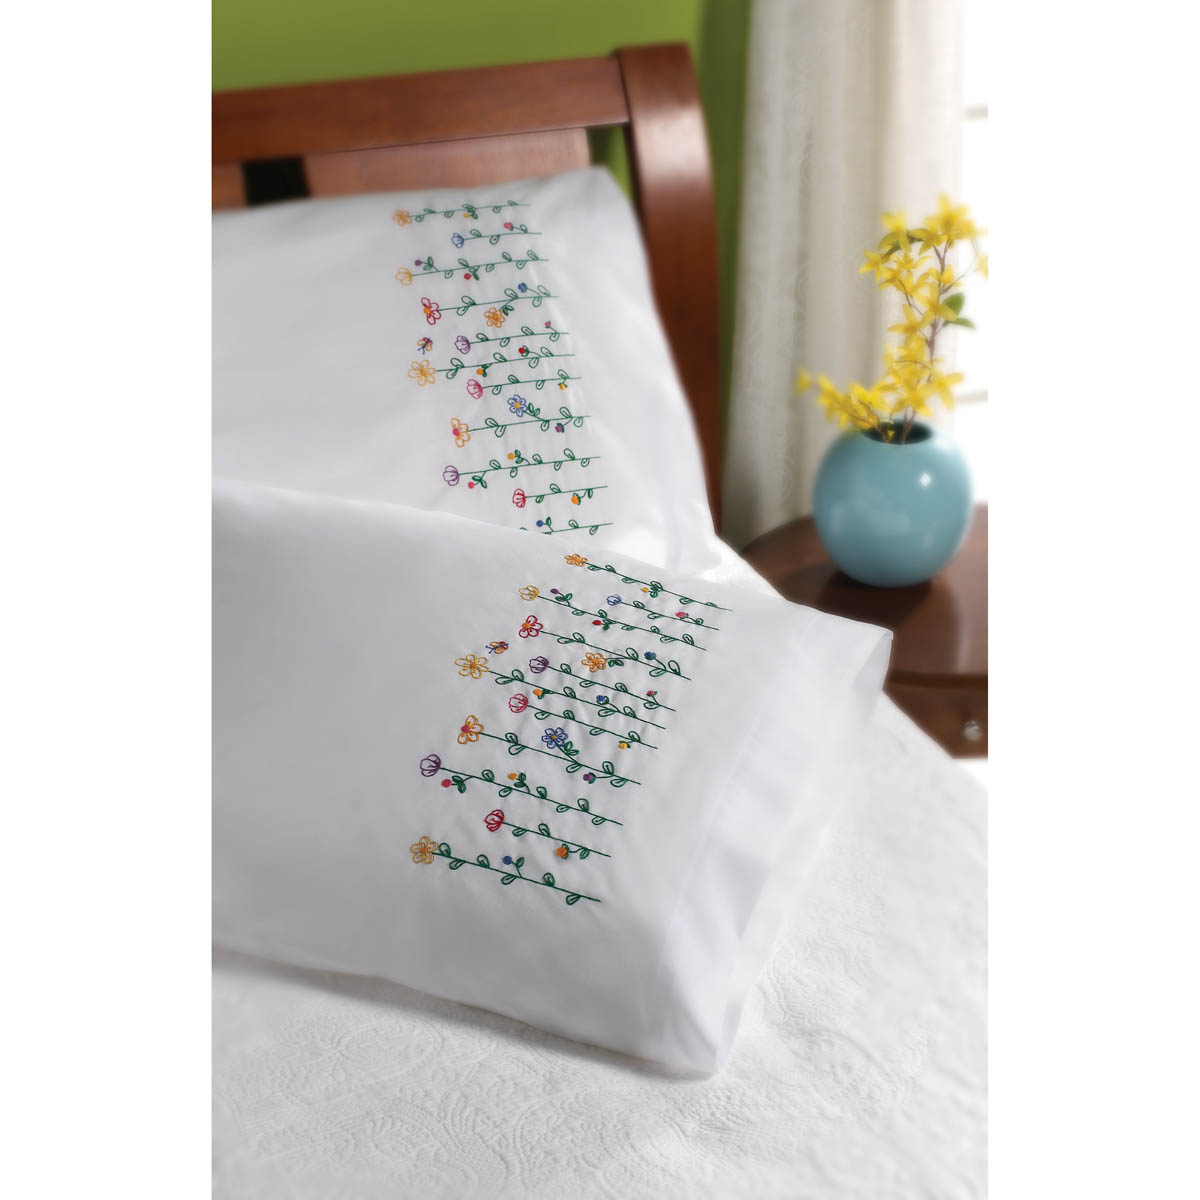 Bucilla ® Special Edition - Stamped Cross Stitch - Pillowcase Pairs - Tall Flowers